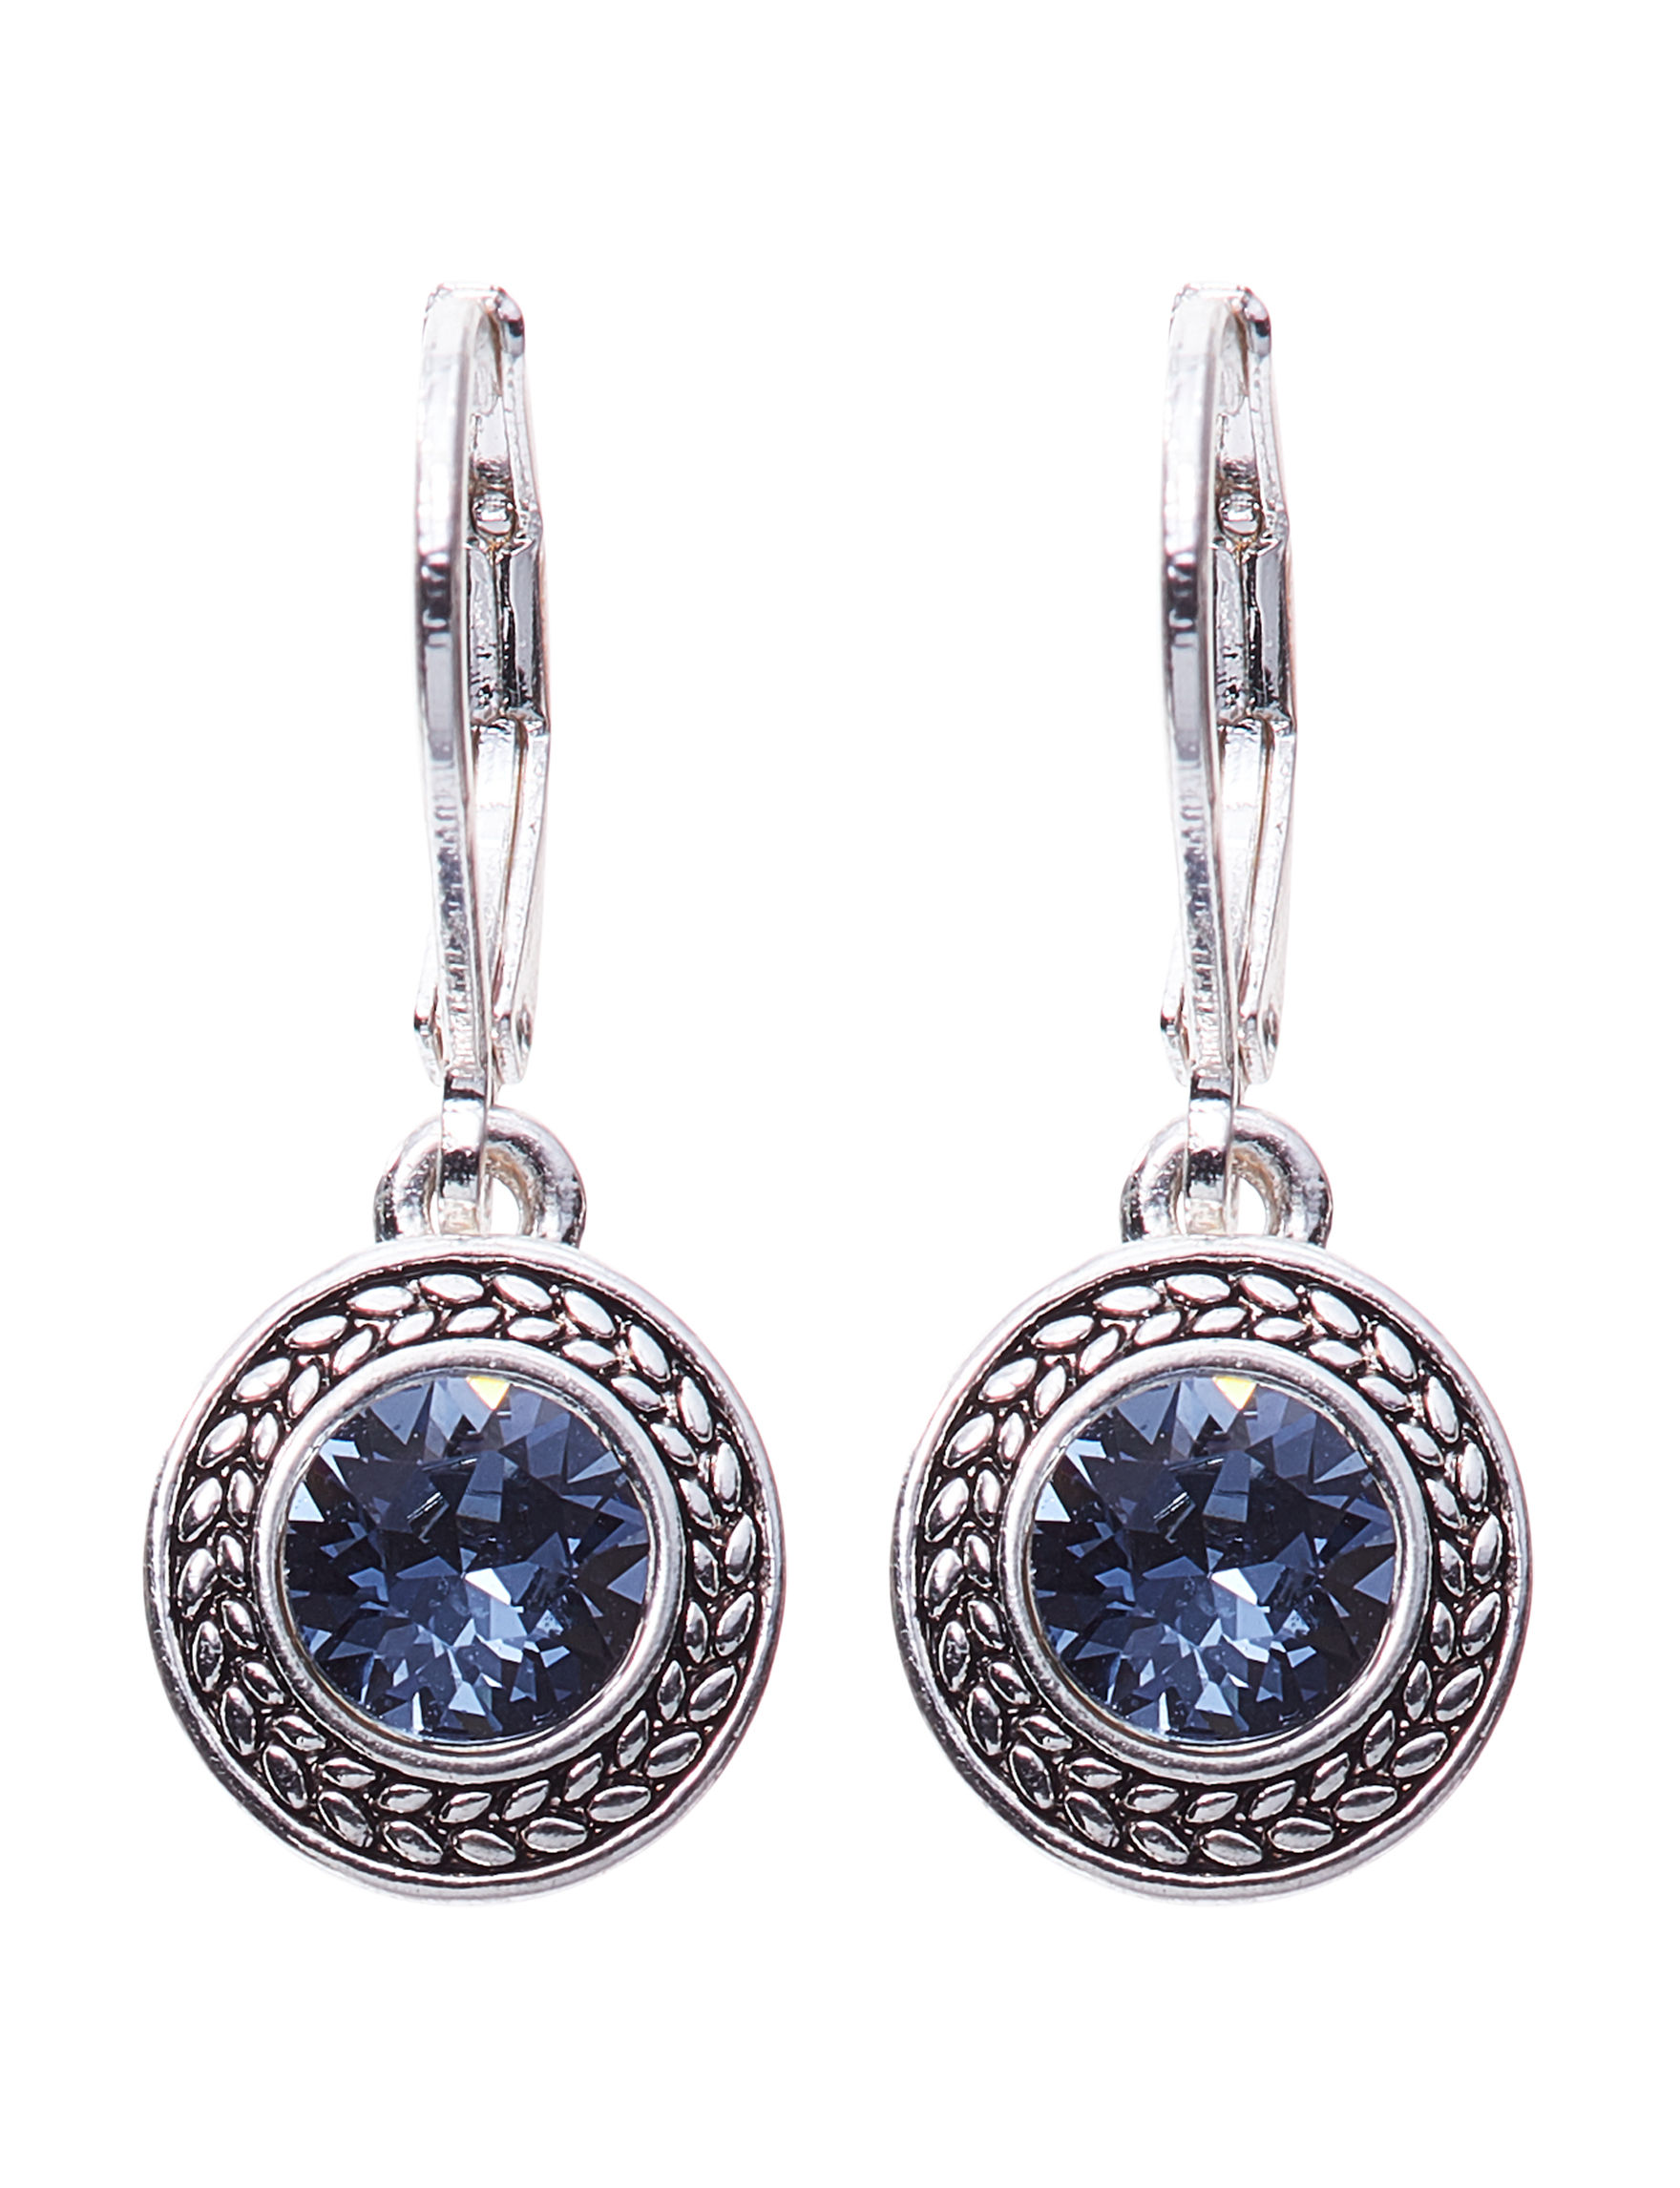 Napier Blue Stone Drops Earrings Fashion Jewelry